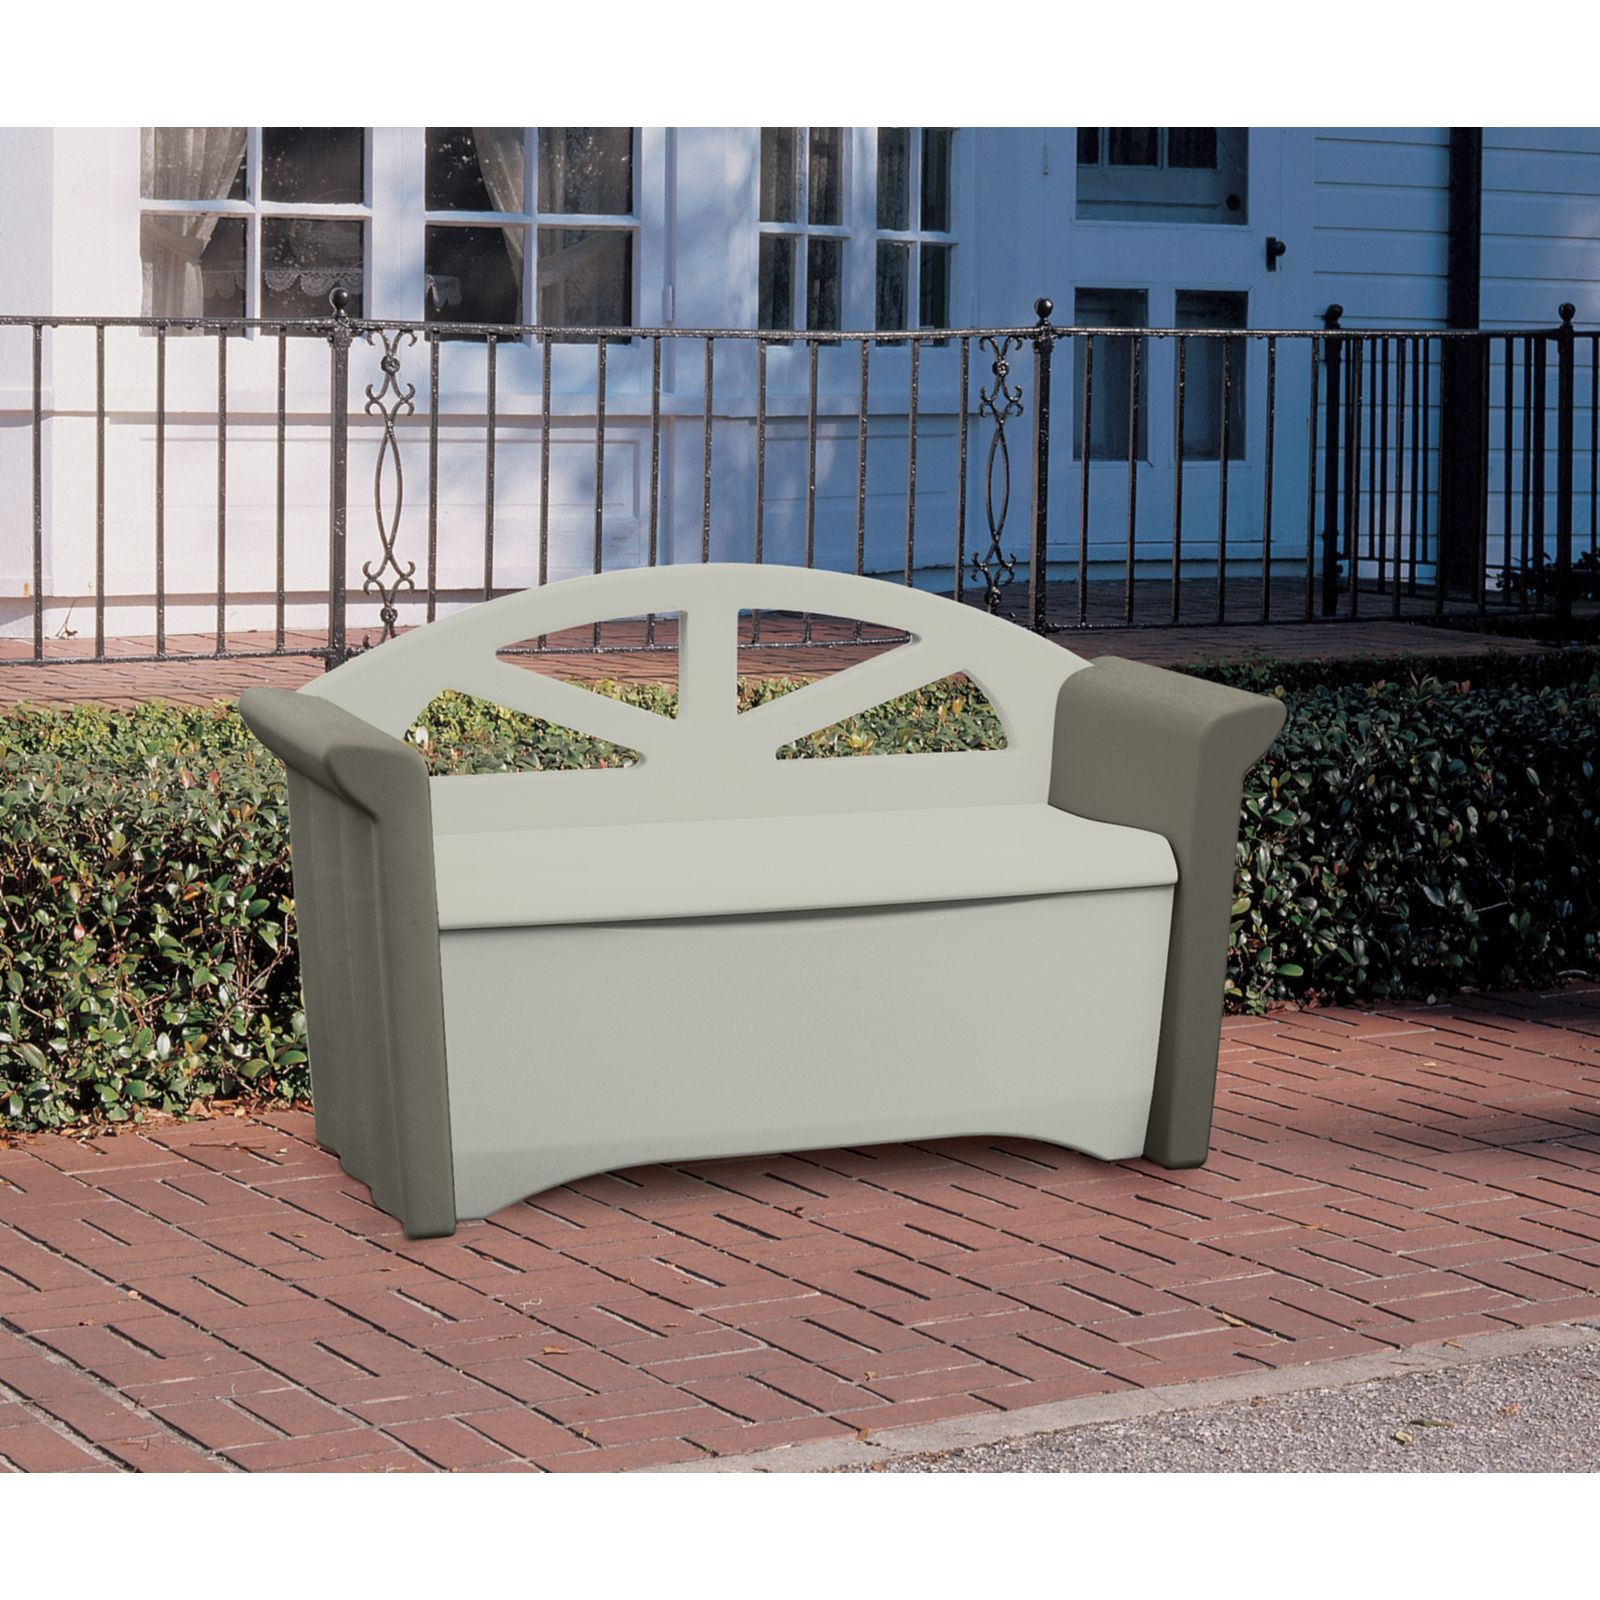 Stunning Rubbermaid Storage Bench Deck Box 3 rubbermaid patio storage bench